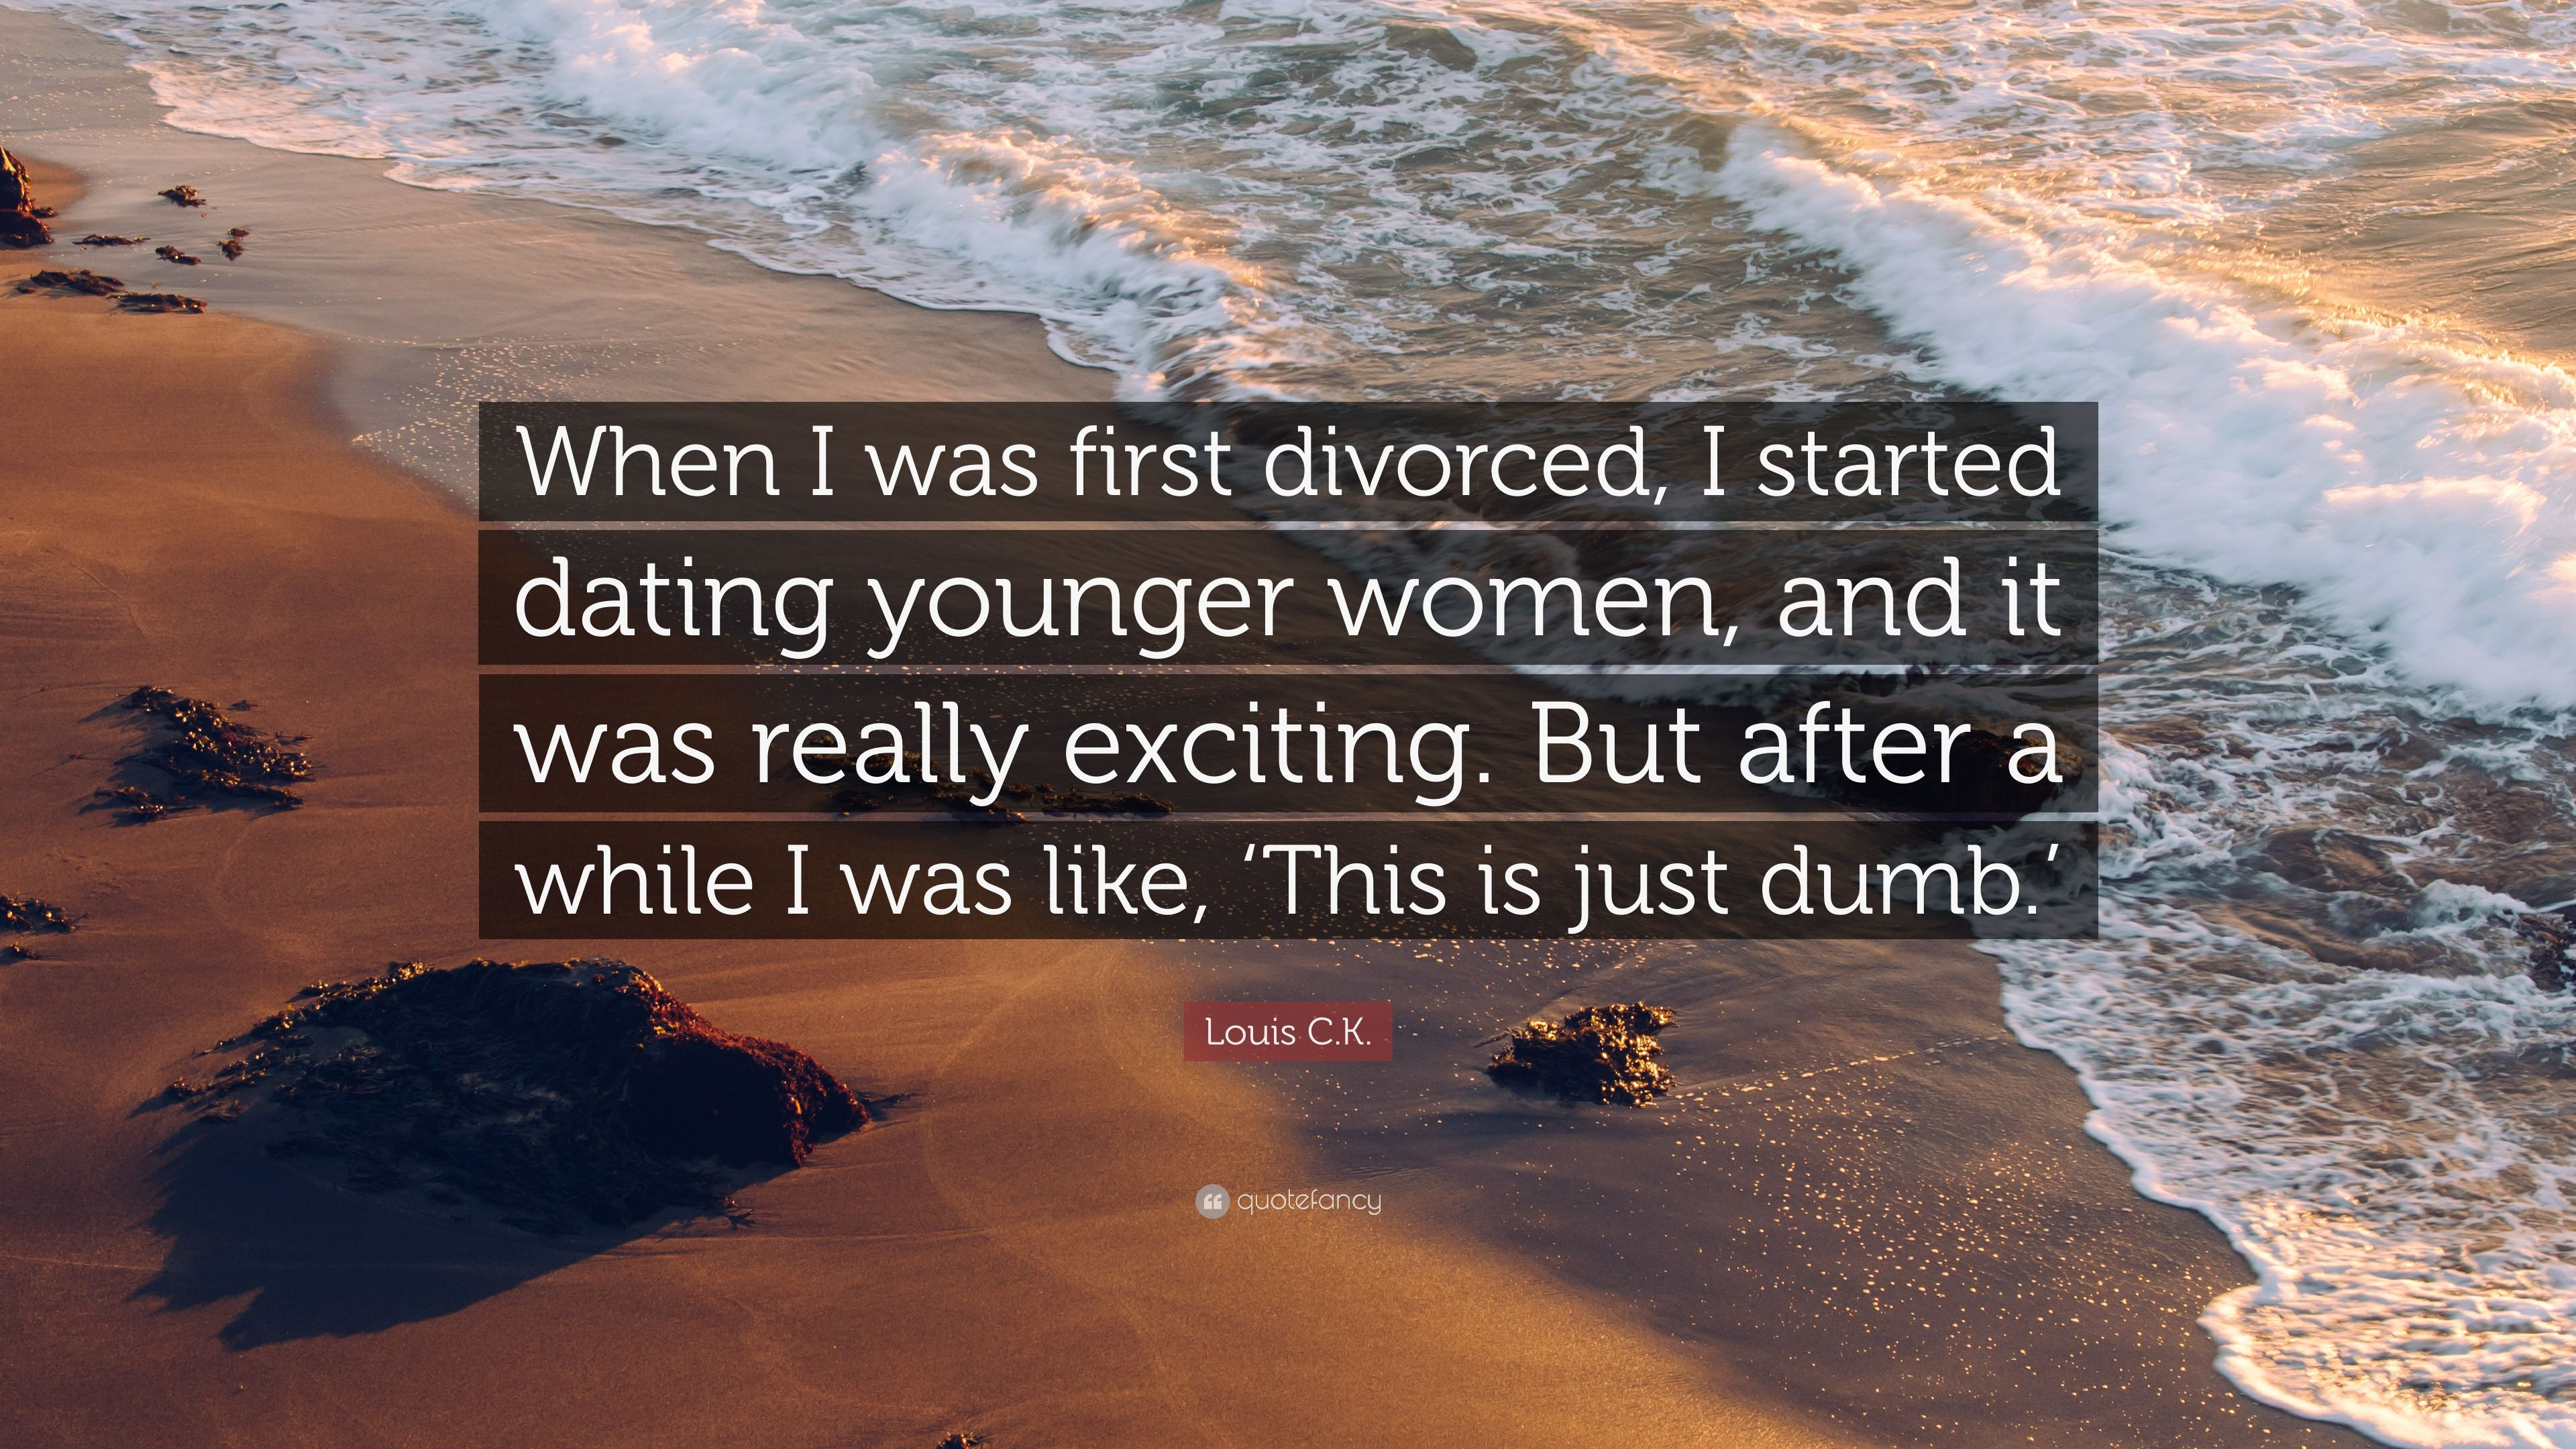 Dating younger woman after divorce